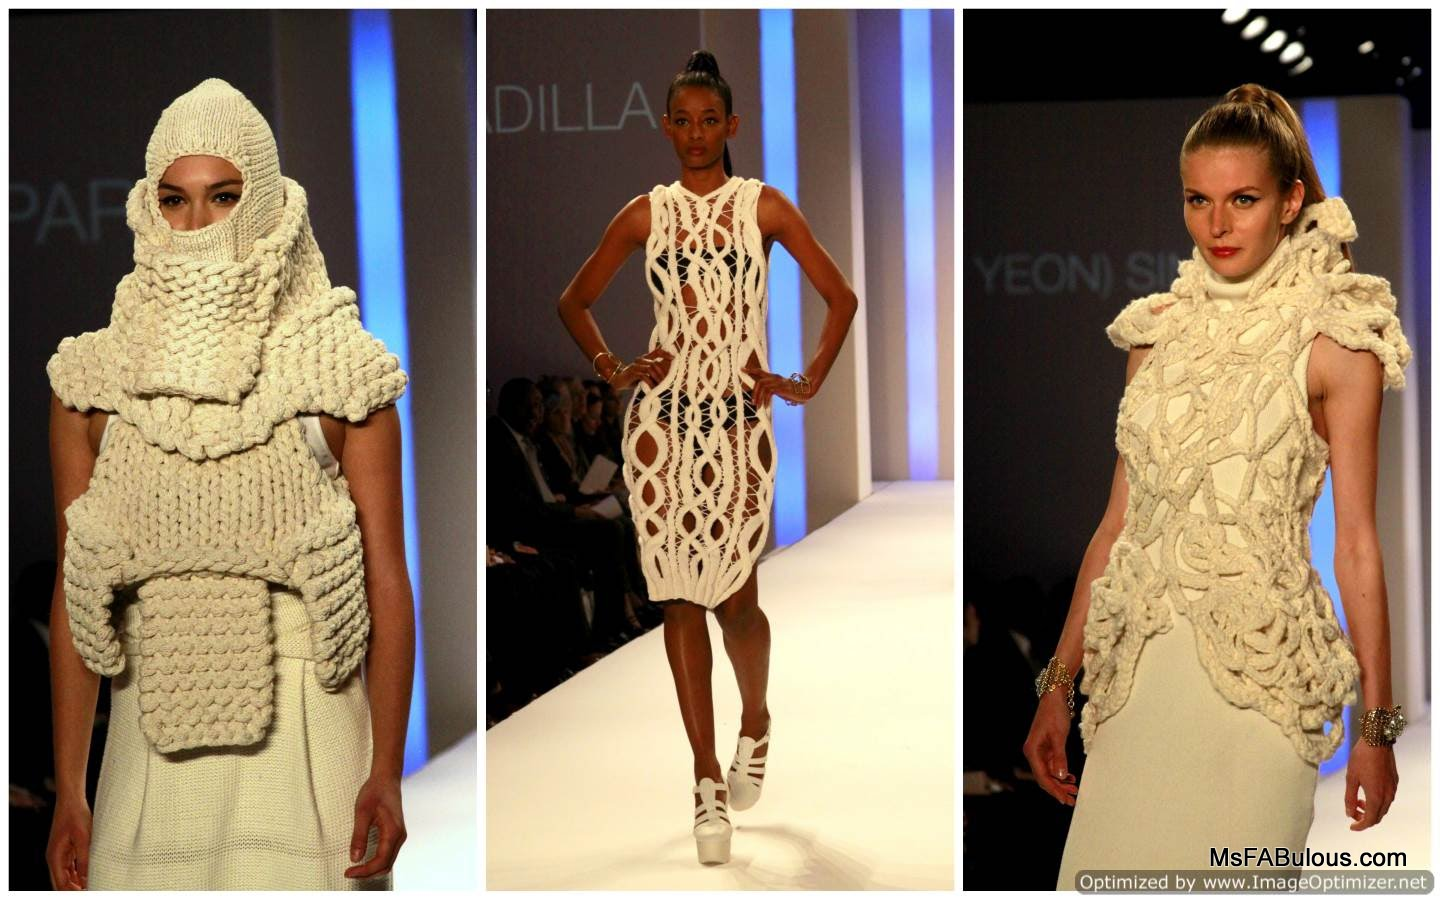 Ms fabulous future of fashion 2013 knitwear design Contemporary fashion designers